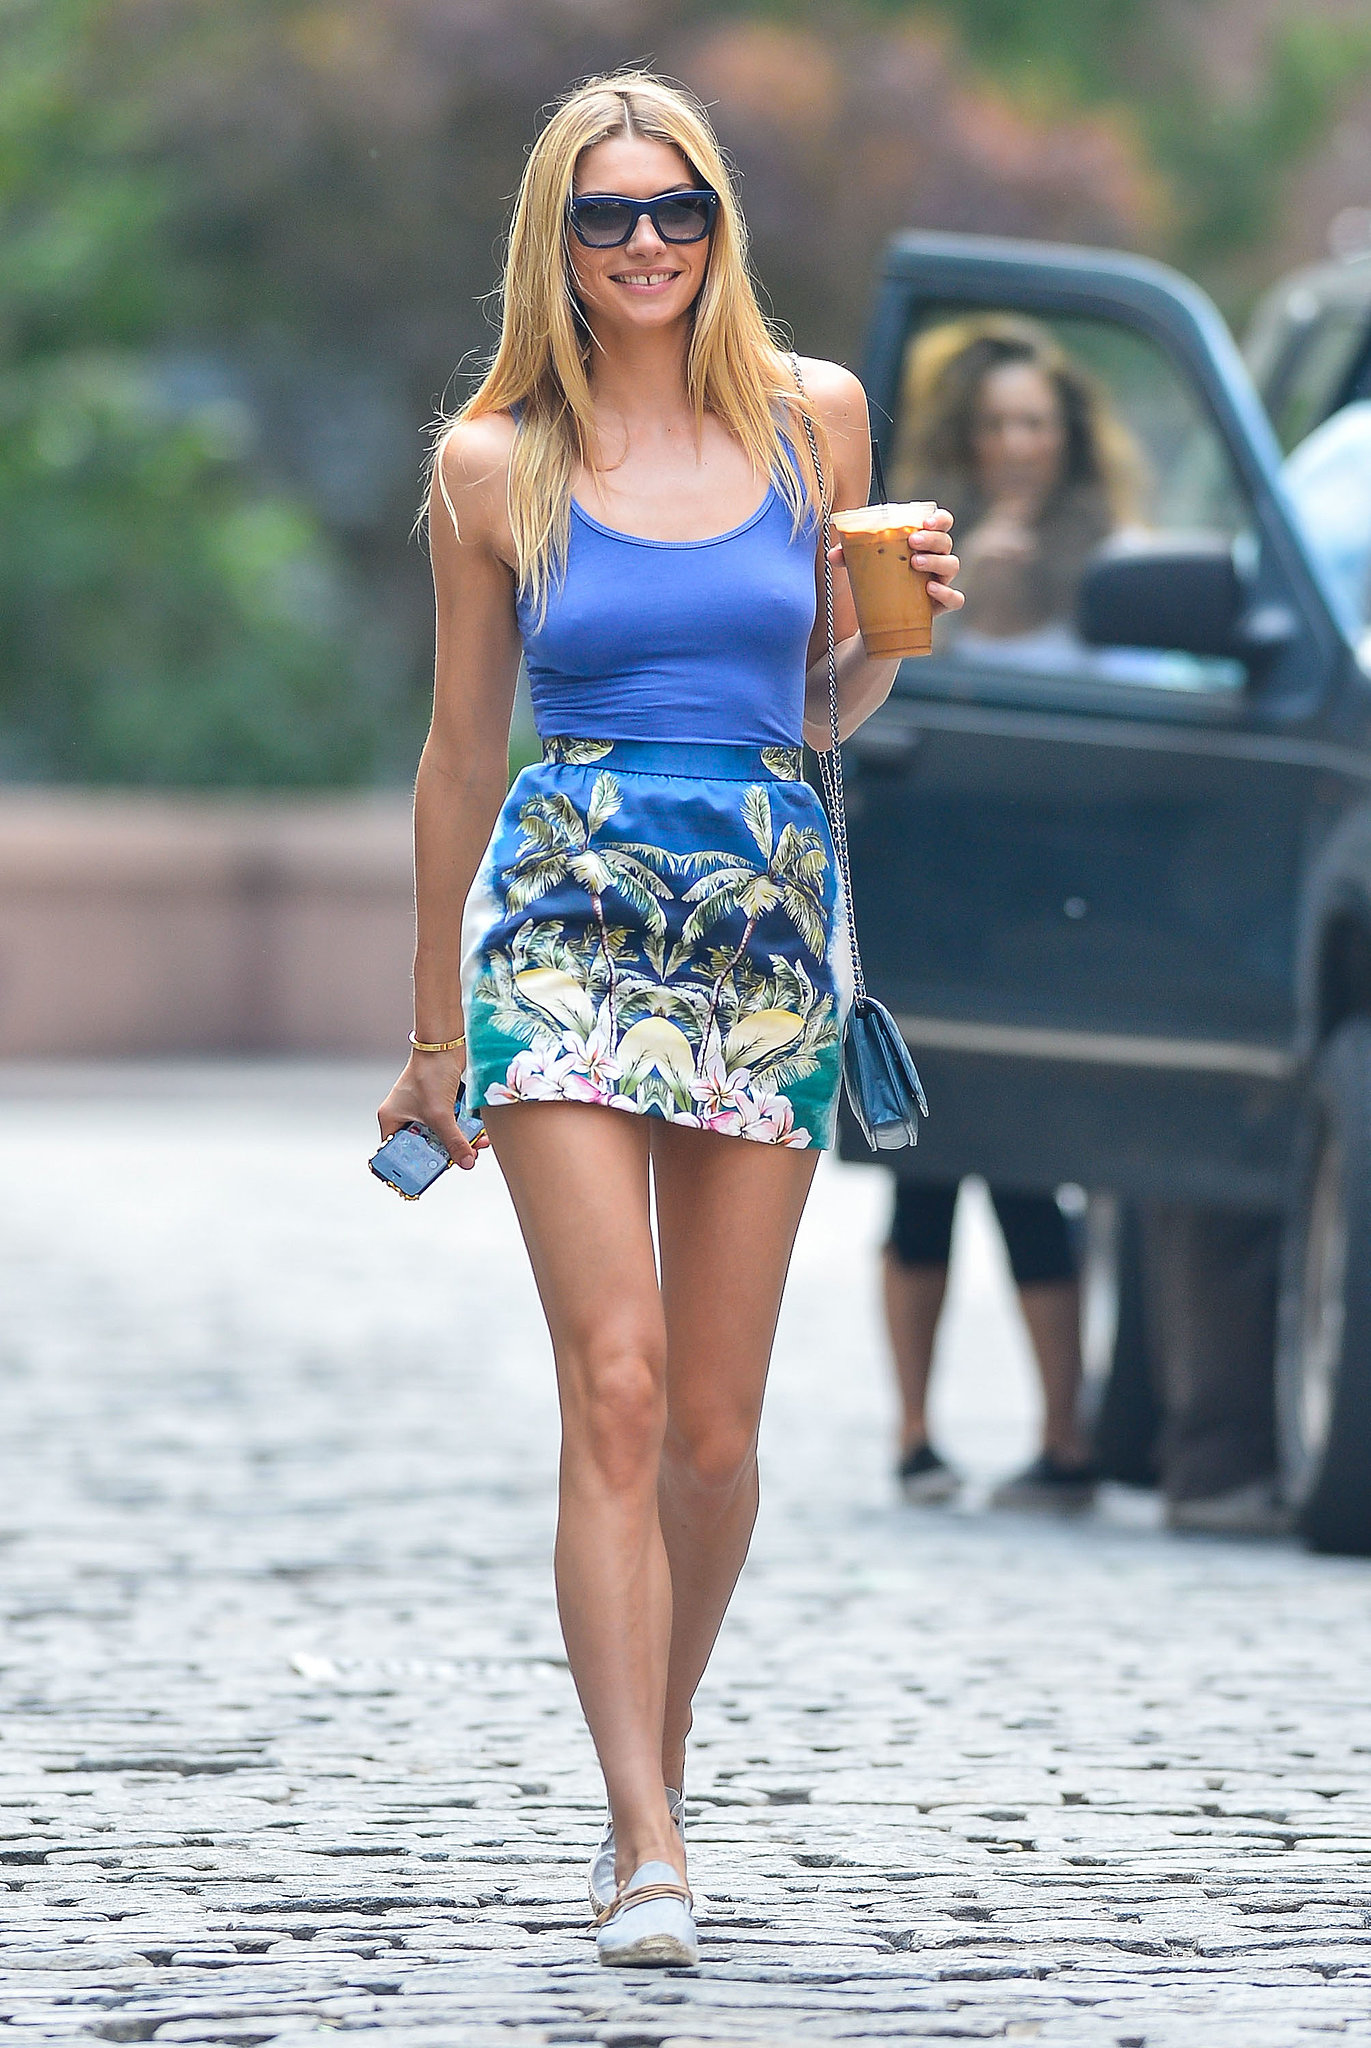 THE MINISKIRT: MINIMUM MATERIAL – MAXIMUM OOMPH! | STRUTTING IN ...